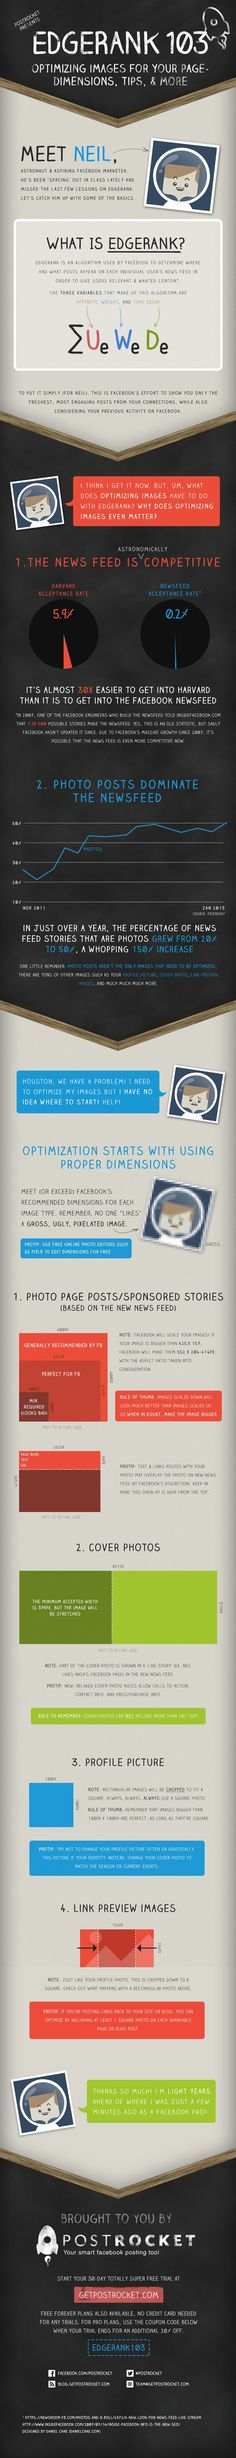 EdgeRank 103 – Optimizing Images for Your Page - Dimensions, Tips, & More (SMR)